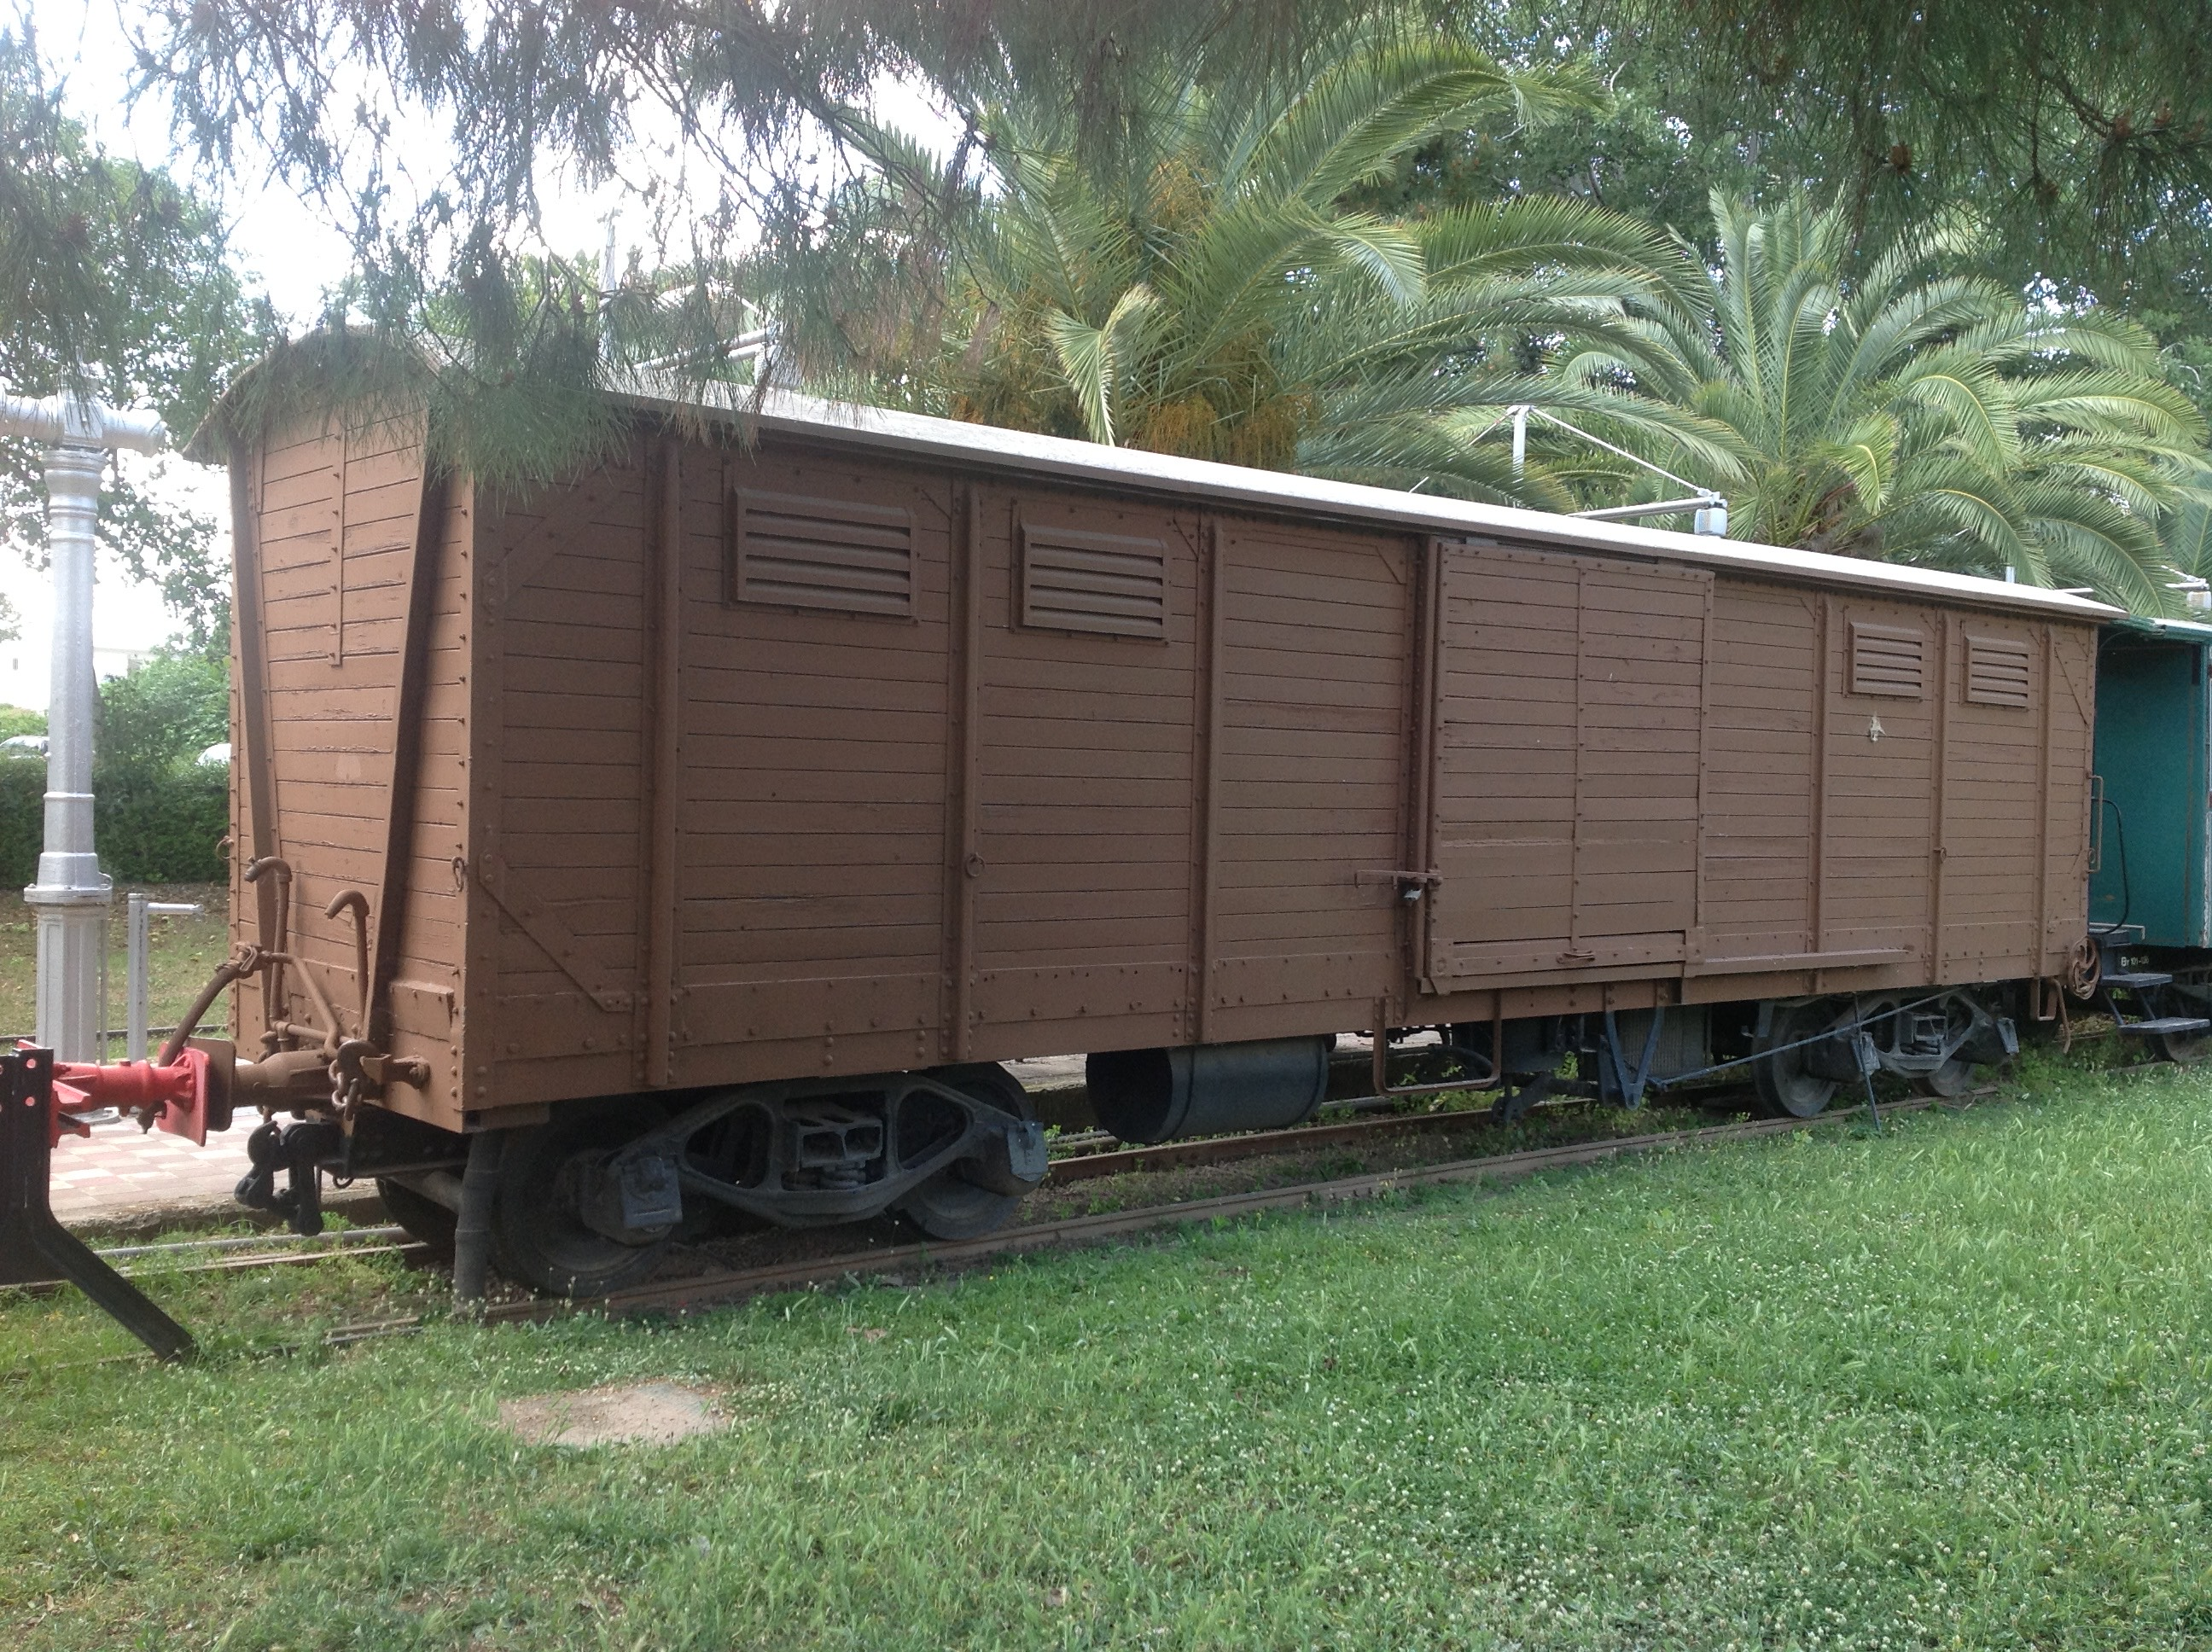 a cattle truck in the Kalamata Railway museum which for many was the mode of transport to Germany.